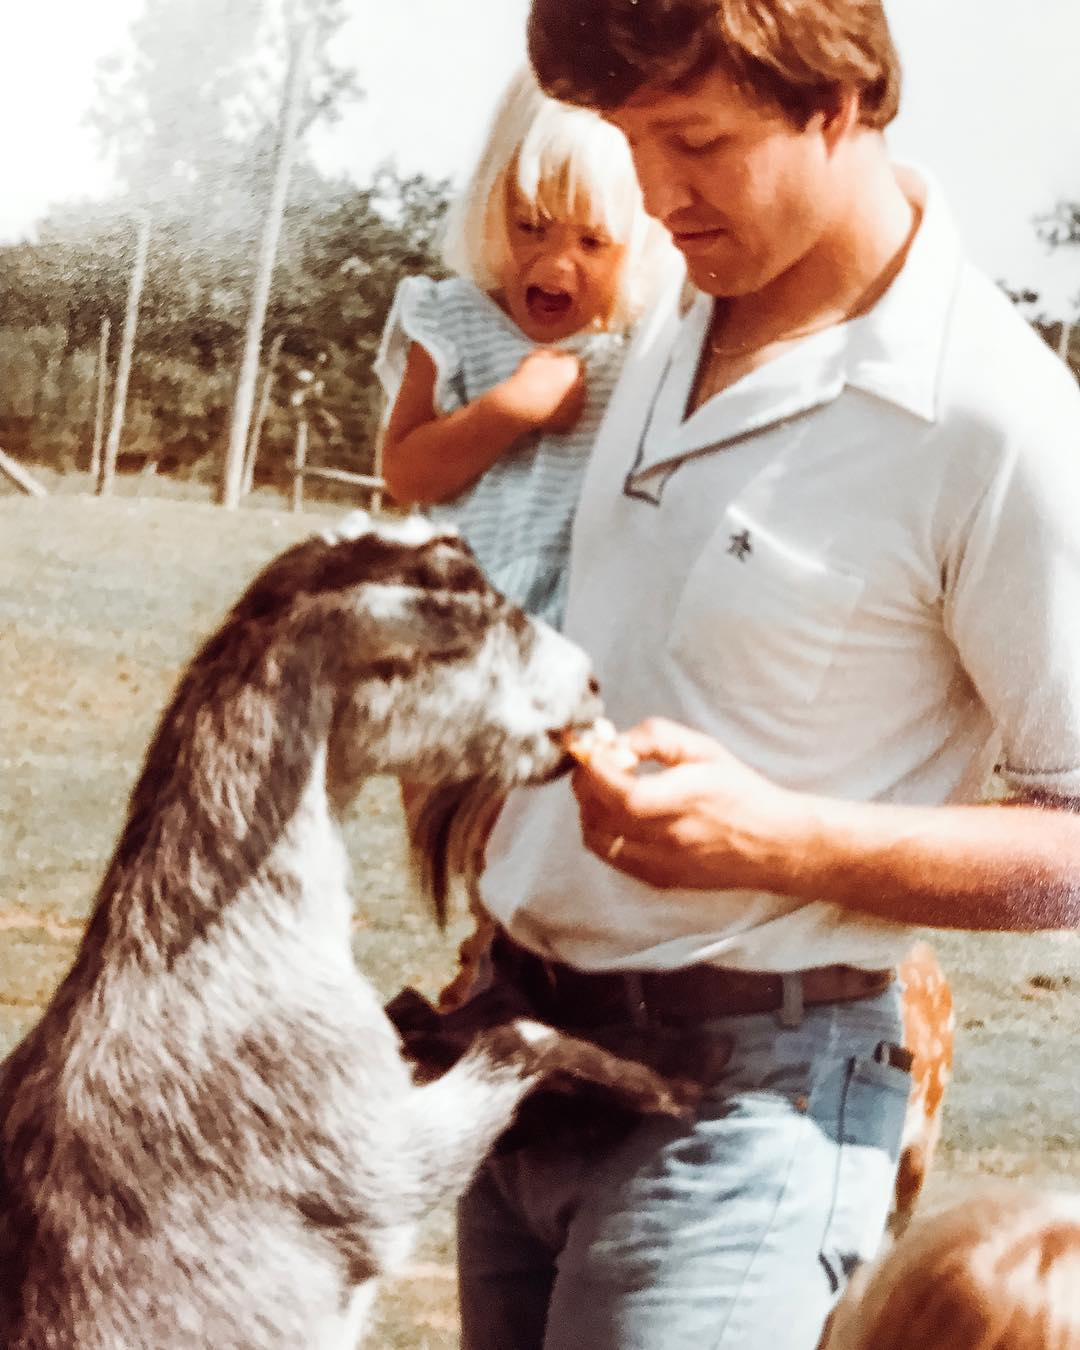 Dad-zoo-goats.jpg